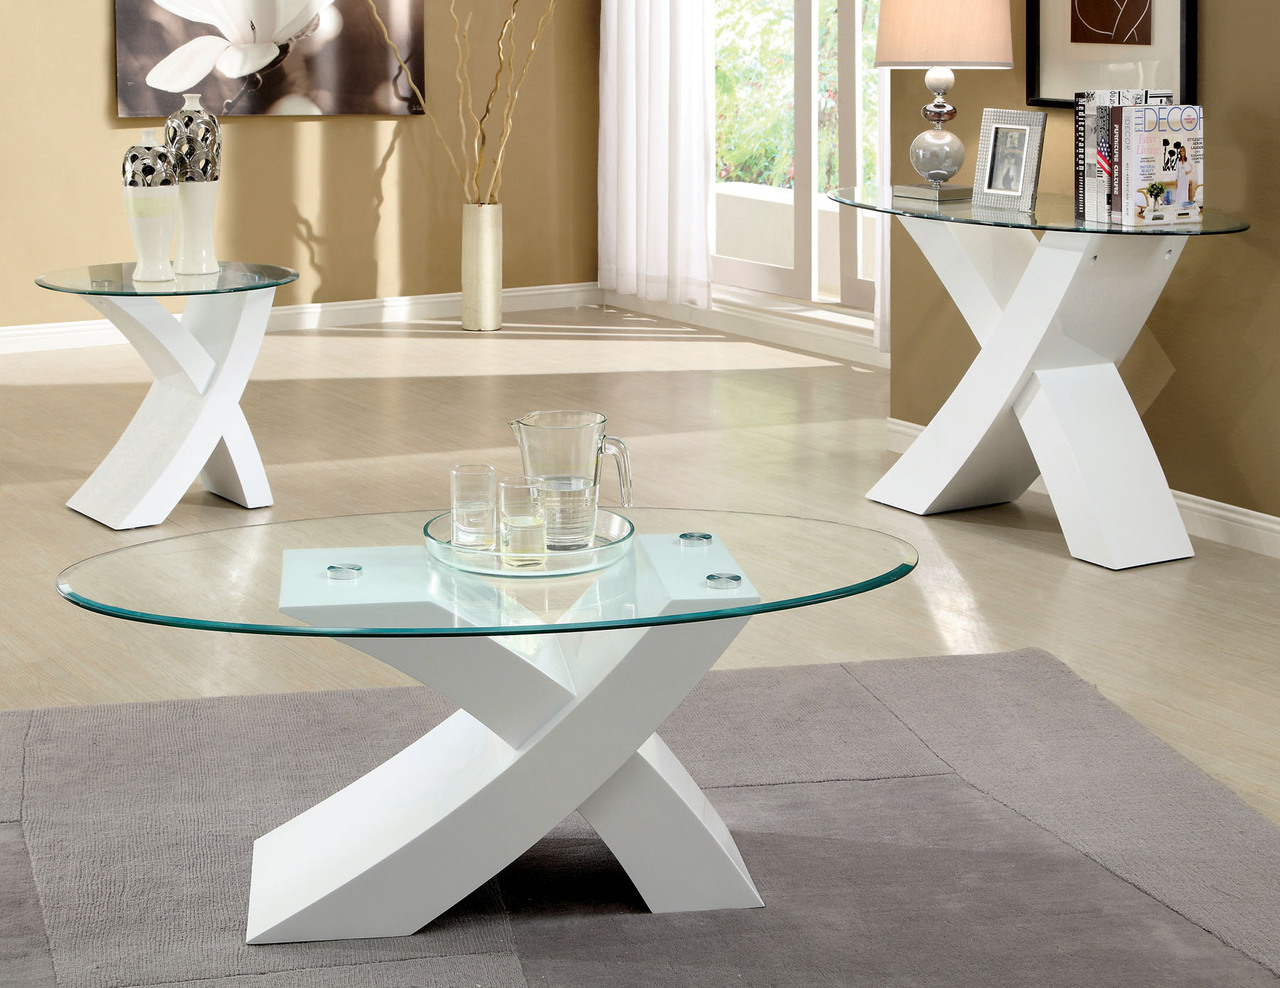 heavenly dining room sets storage mini round glass white coffee and end table interior decoration wonderful handmade high quality cool design wrought iron ideas accent house